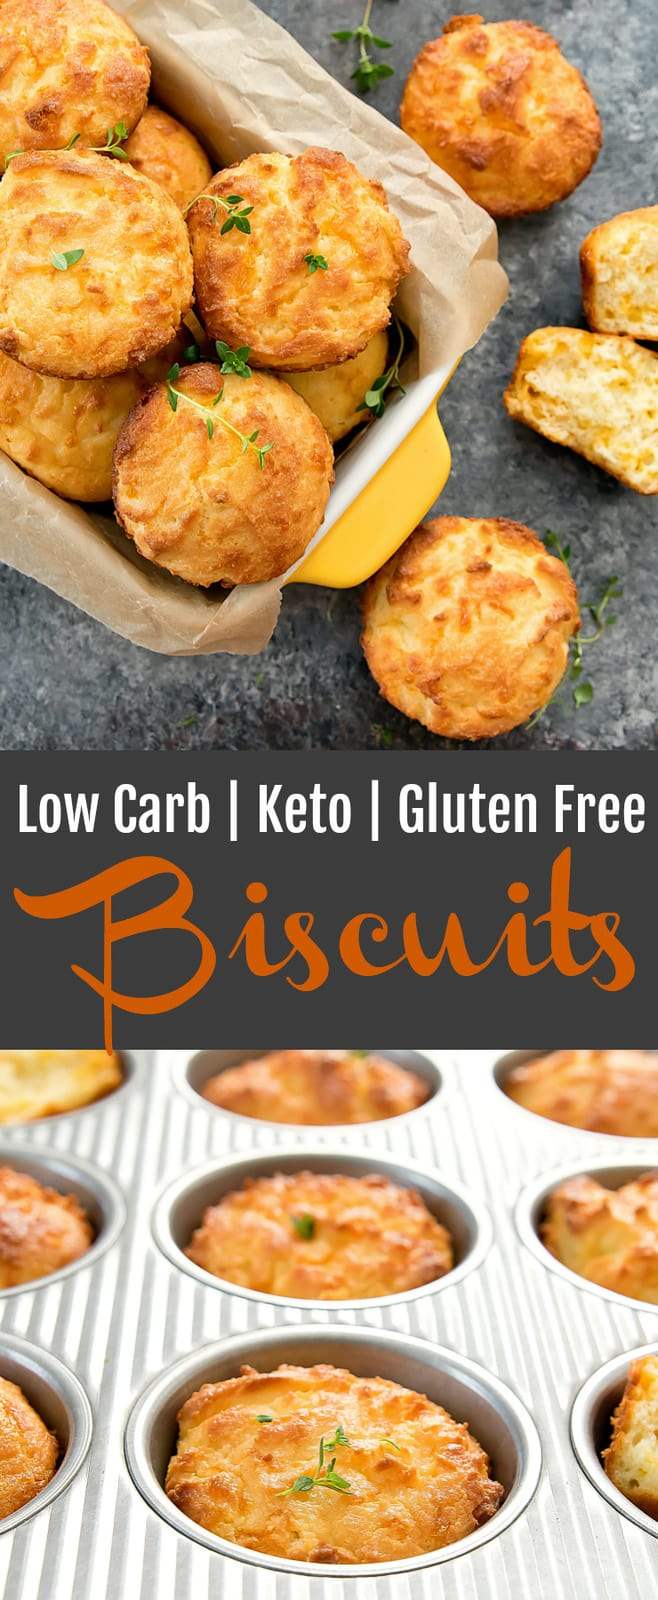 Low Carb Keto Biscuits. These biscuits are so tender and fluffy, you won't believe they are flourless. They are easy and ready in less than 30 minutes.